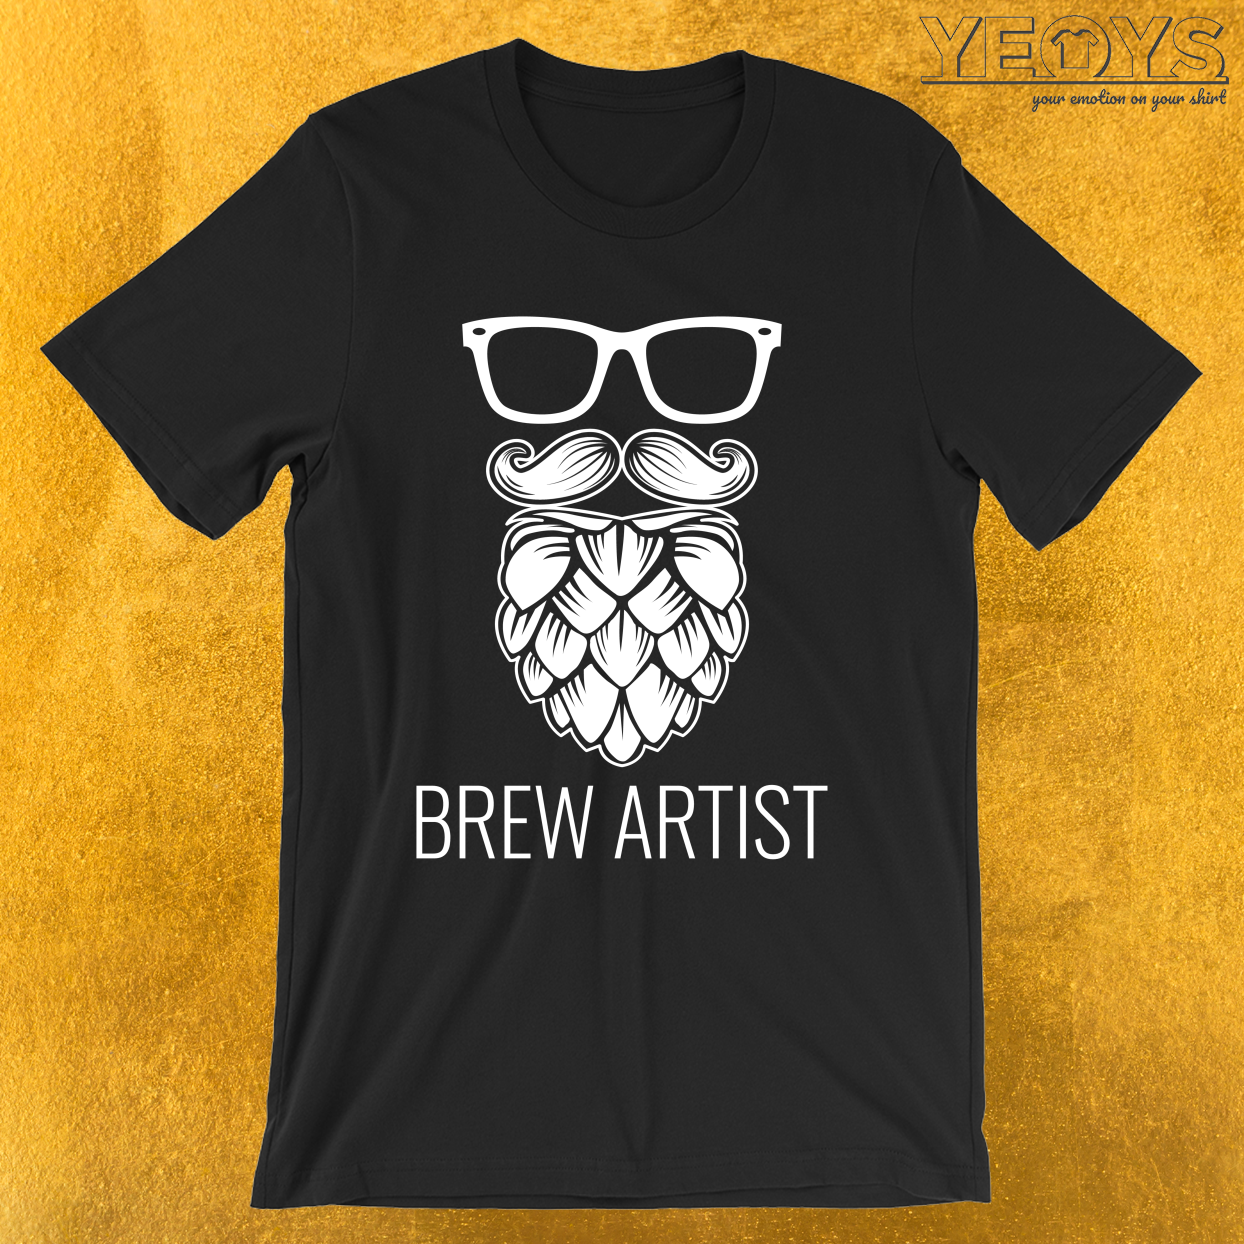 Brew Artist – Craft Beer Tee